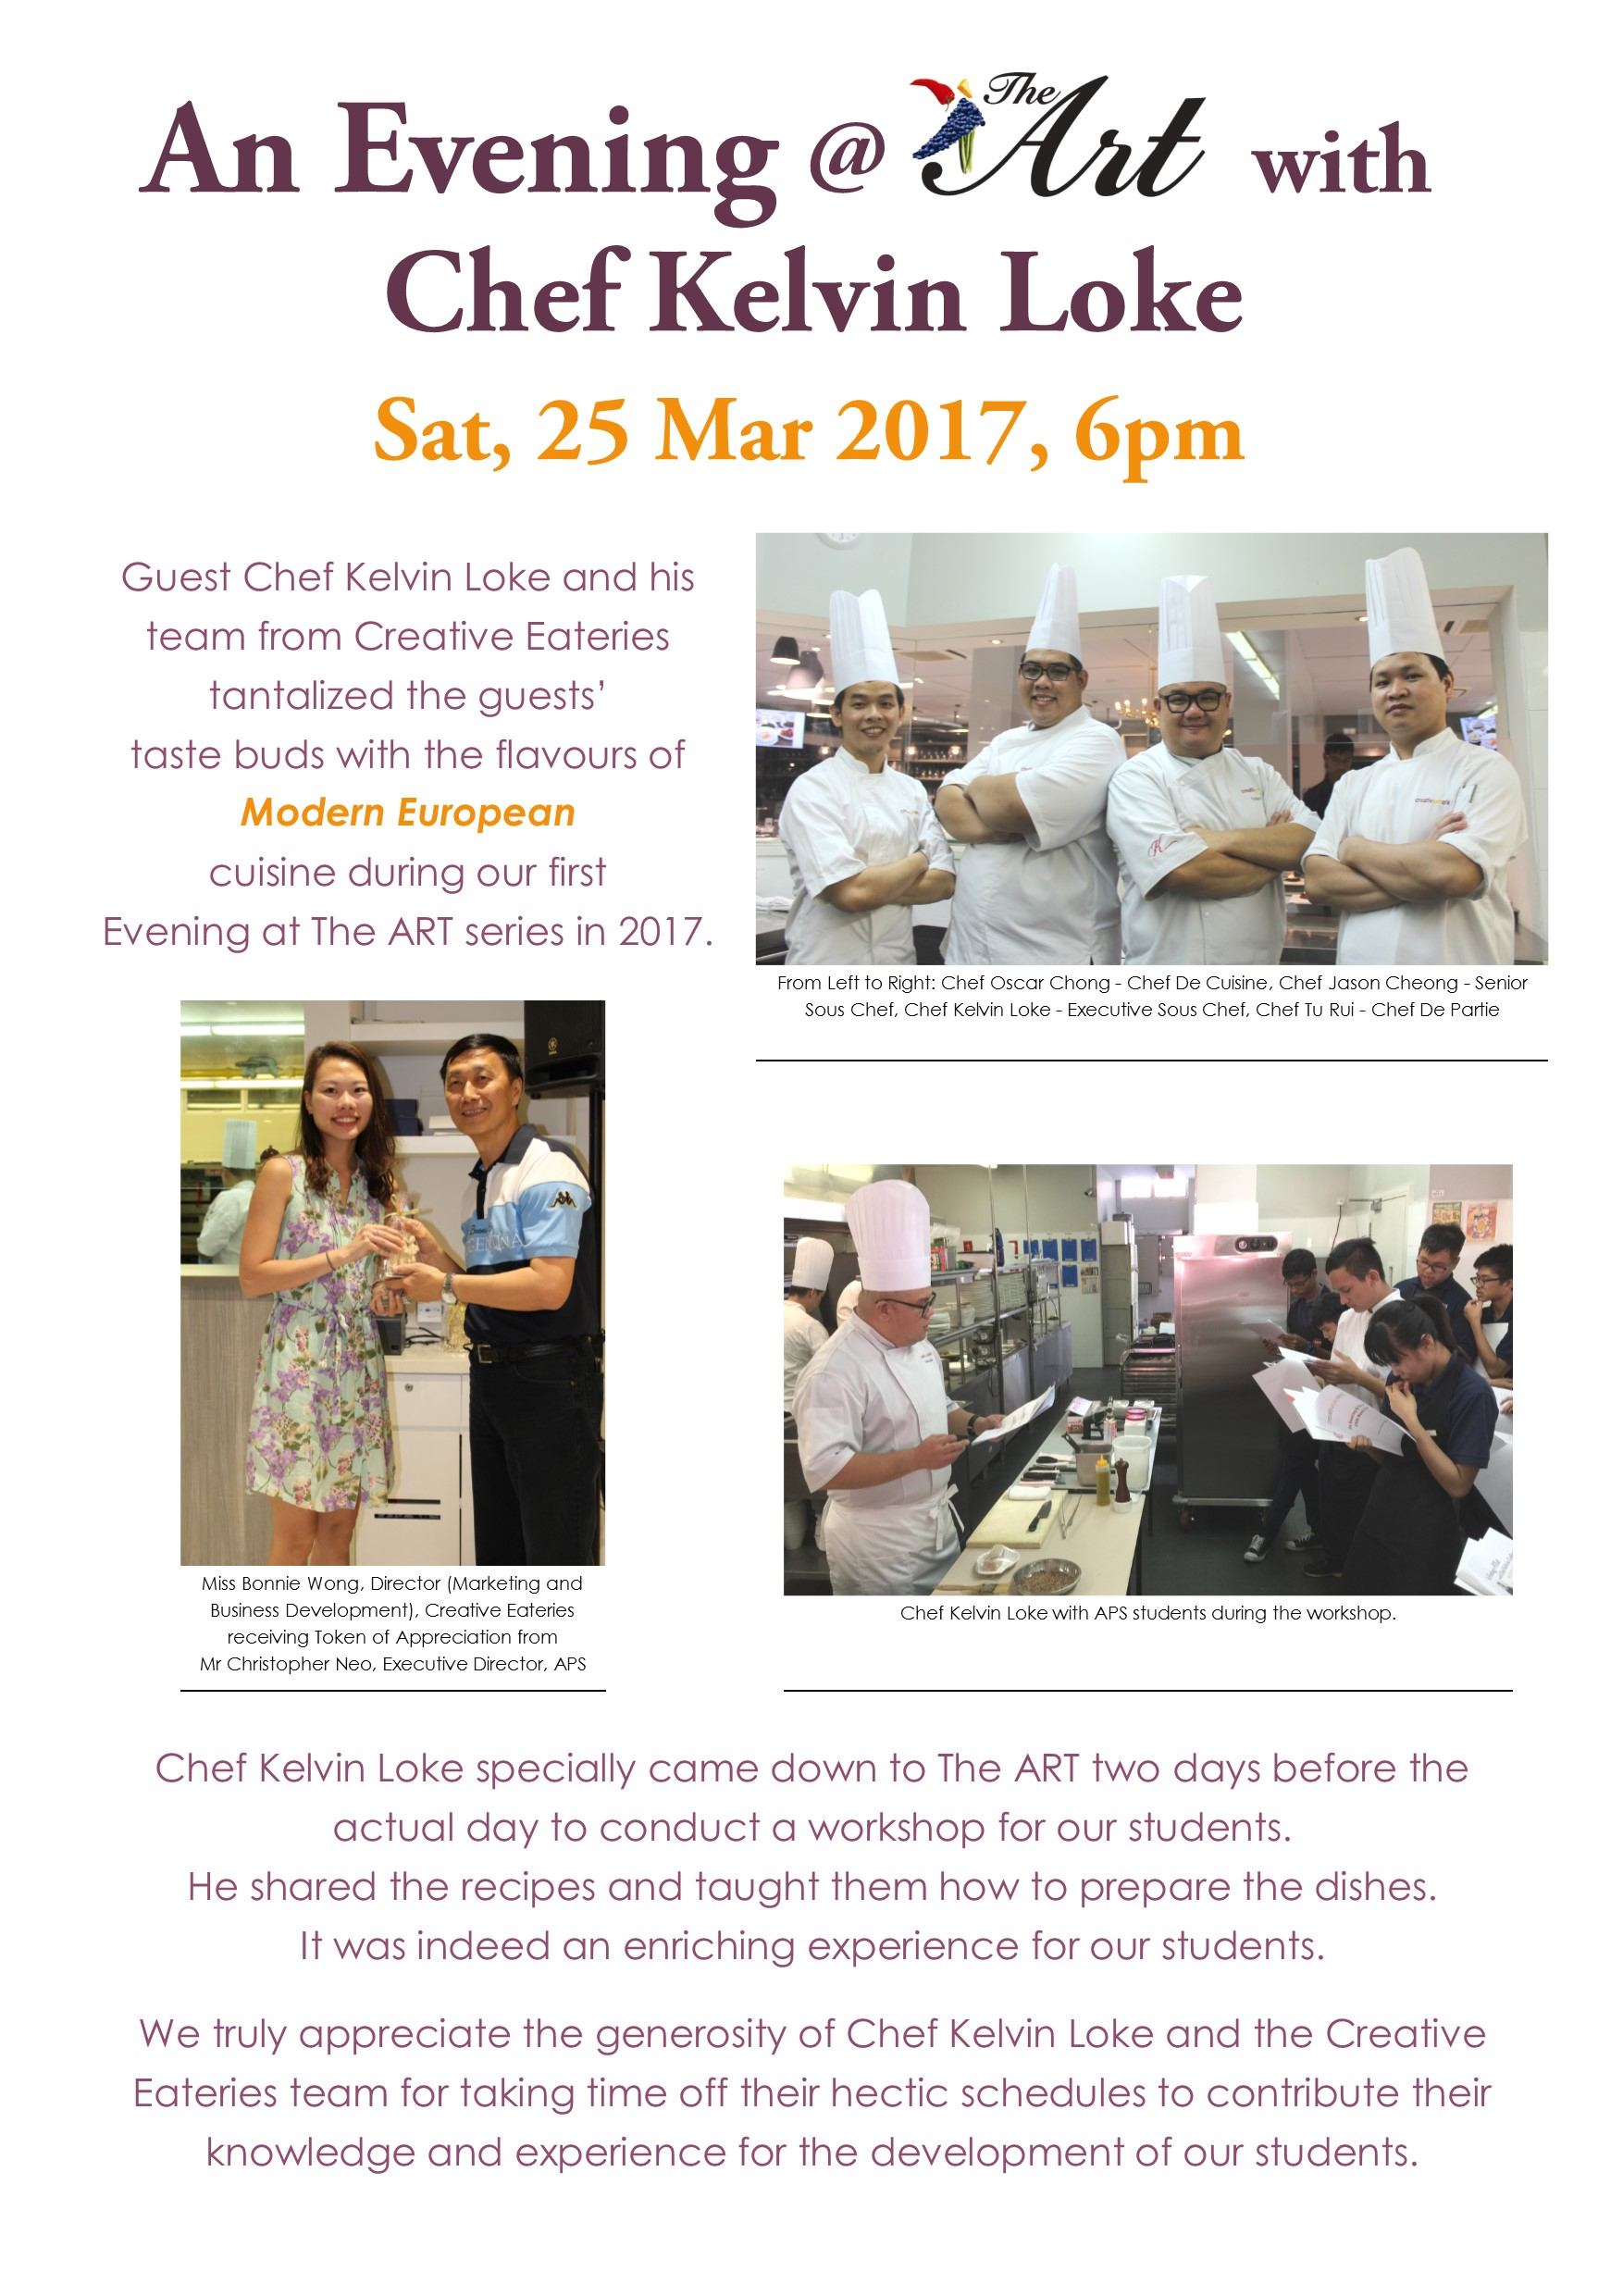 An Evening at The ART with Chef Kelvin Loke (Sat 25 Mar 2017) - Post Writeup.jpg